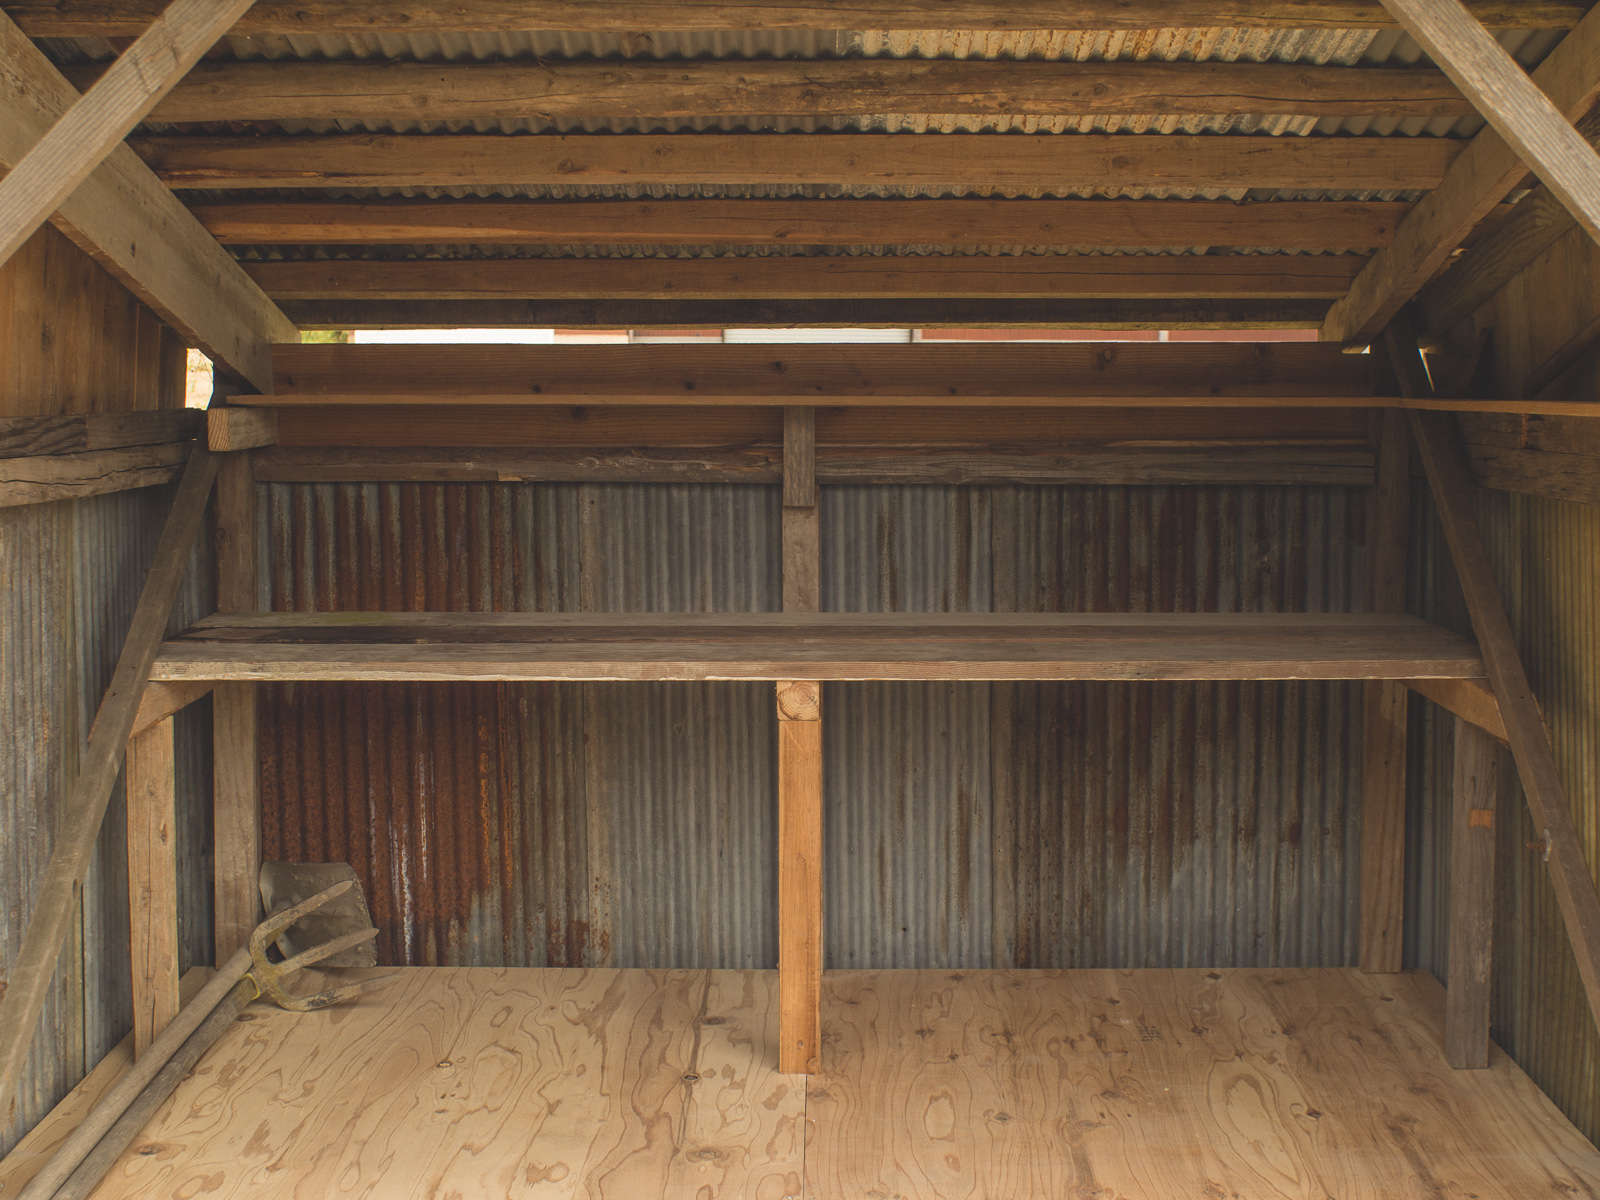 Chashitsu-goya garden shed from reclaimed materials in Hyogo, Japan